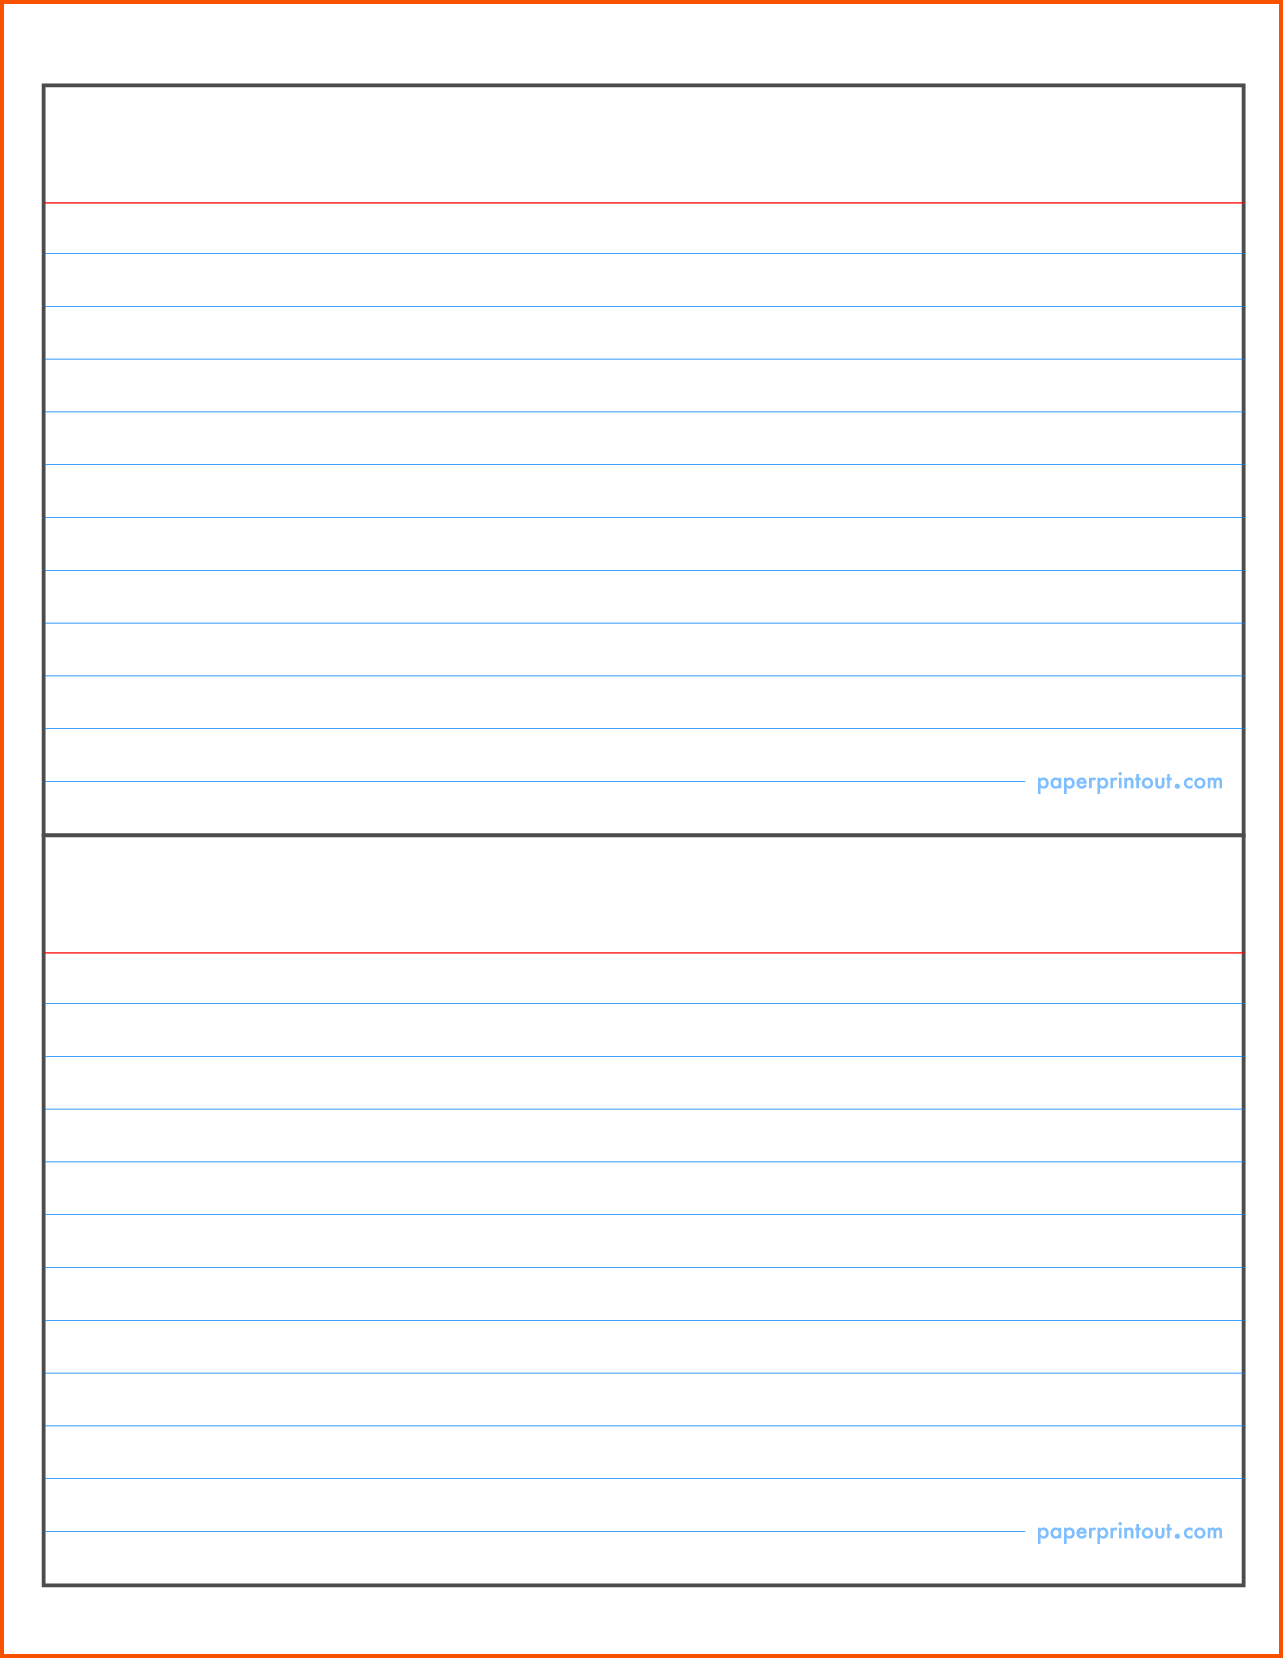 2225 Create 2225 X 225 Index Card Template For Word Photo with 2225 X 225 For 3 X 5 Index Card Template